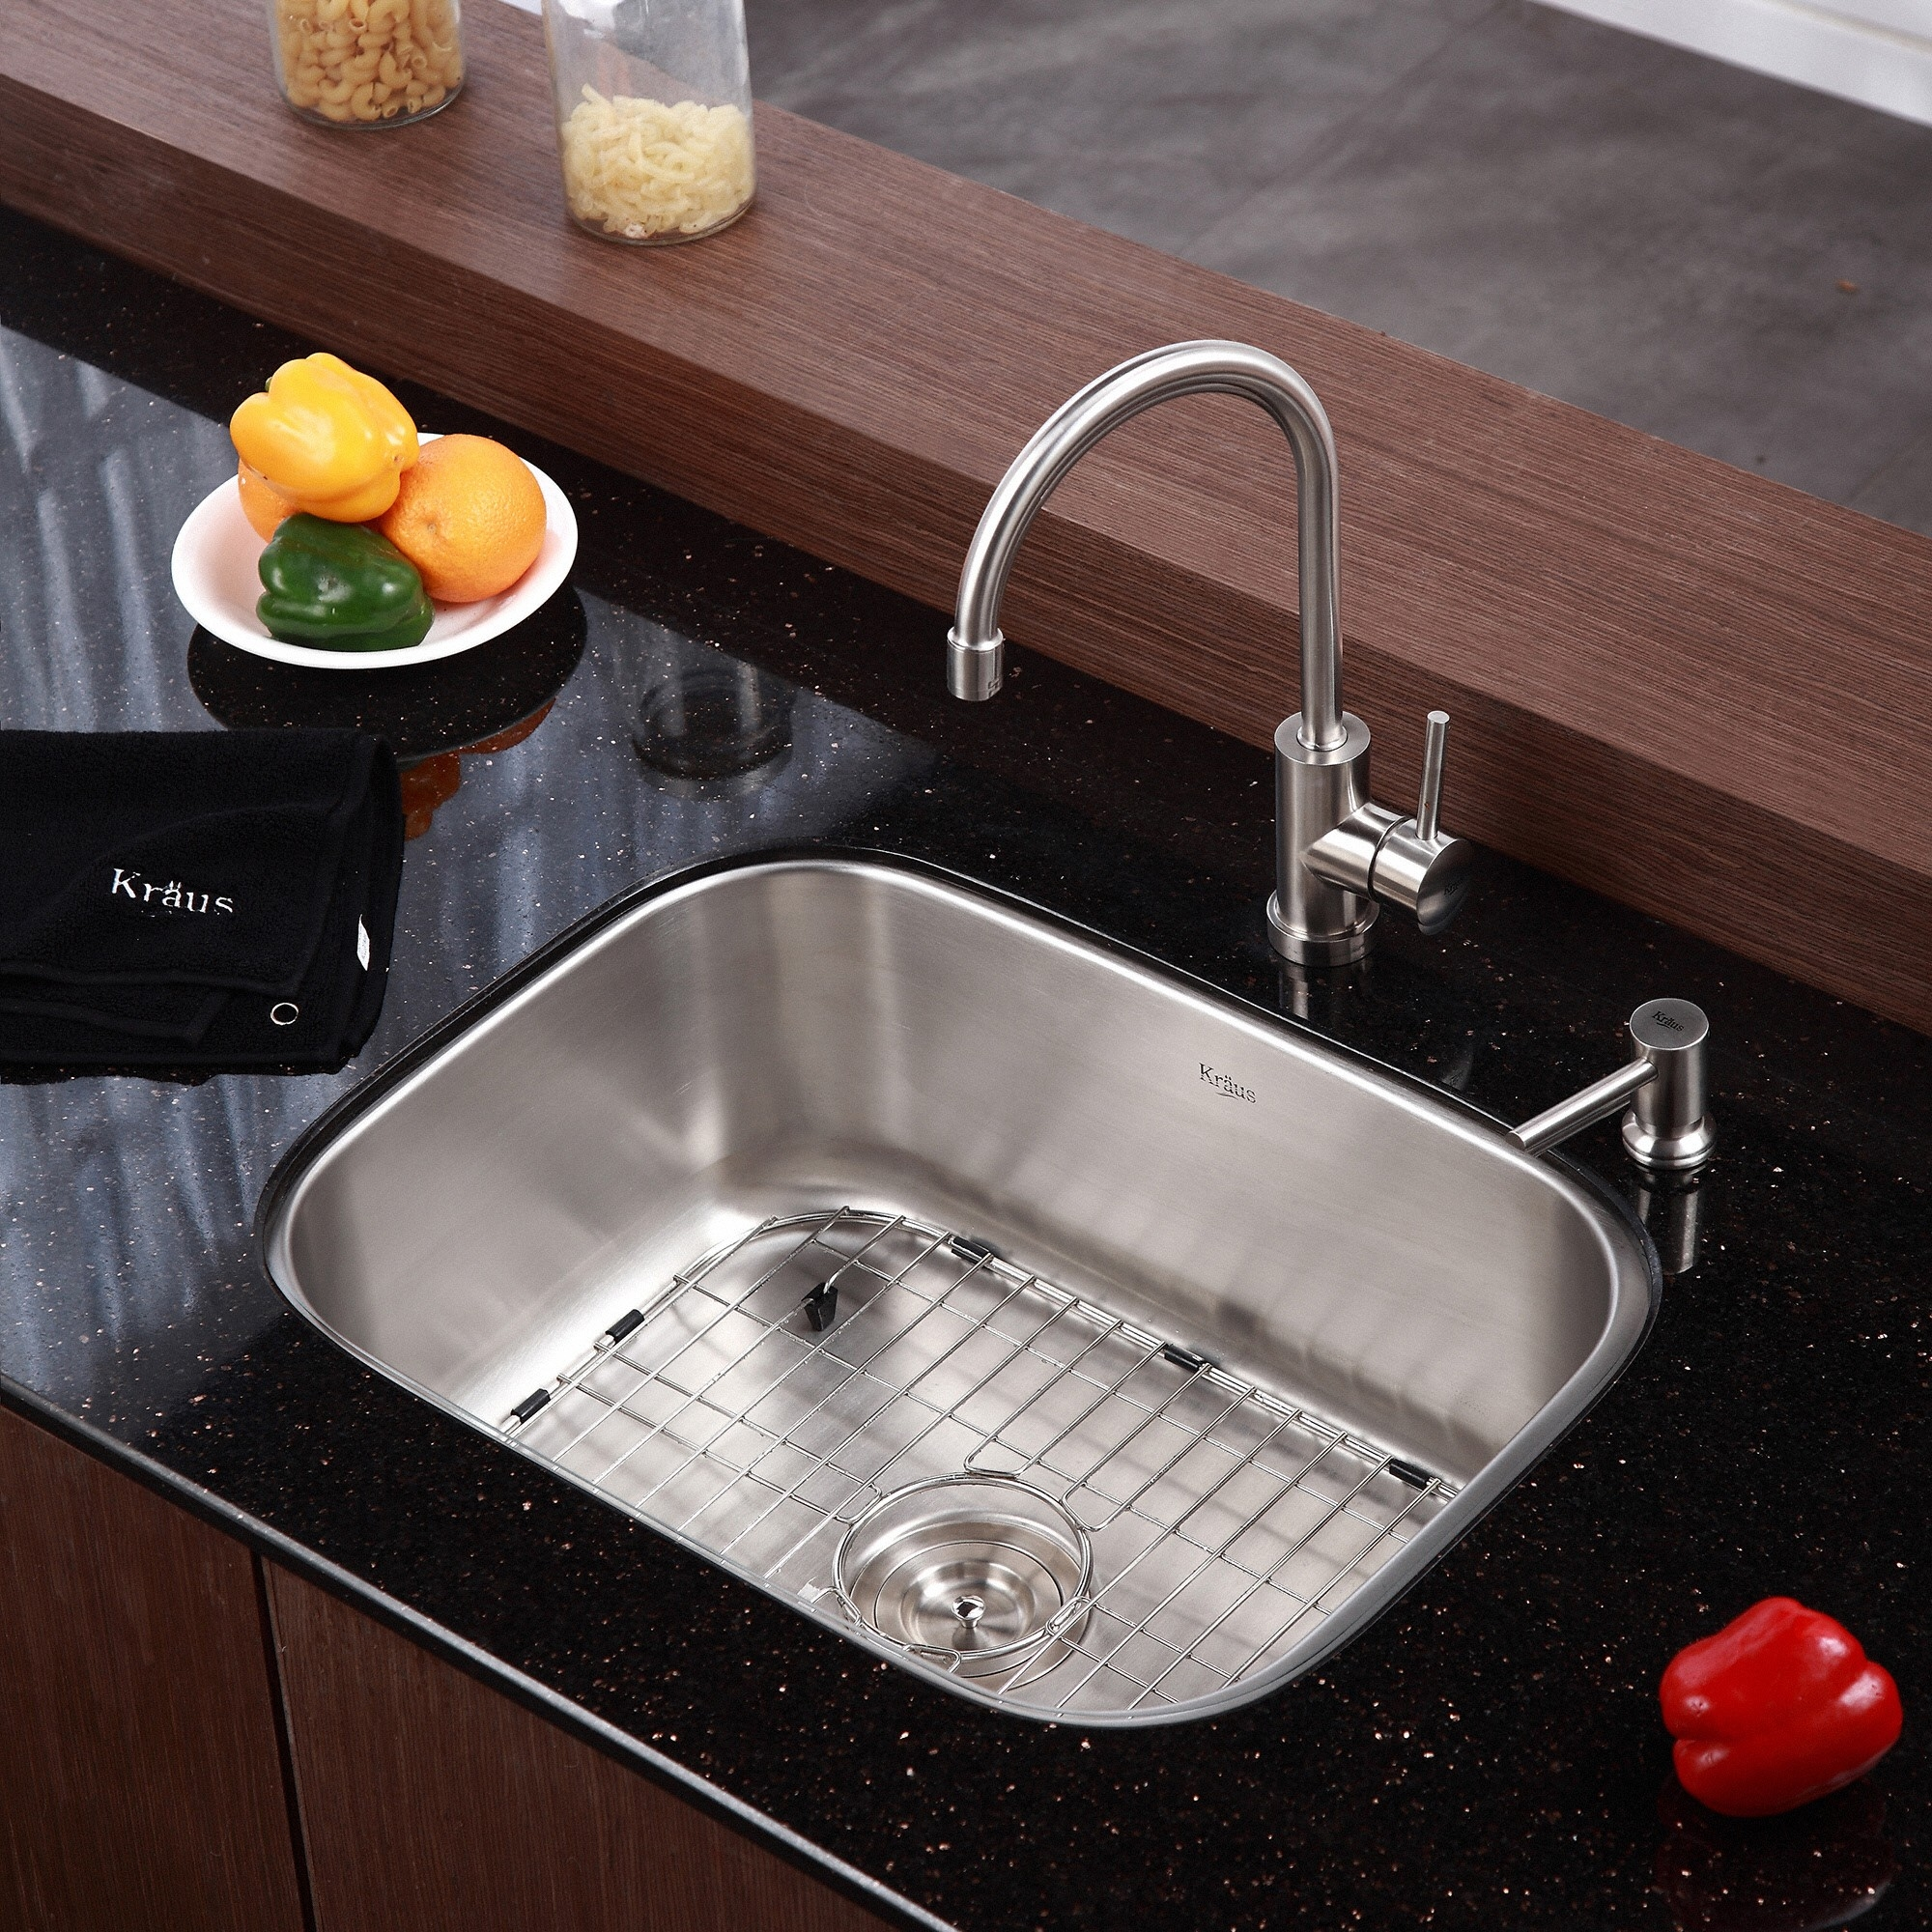 Ideas, undermount kitchen sink and faucet combo undermount kitchen sink and faucet combo kitchen kraus sink for outstanding quality and durability 2000 x 2000  .